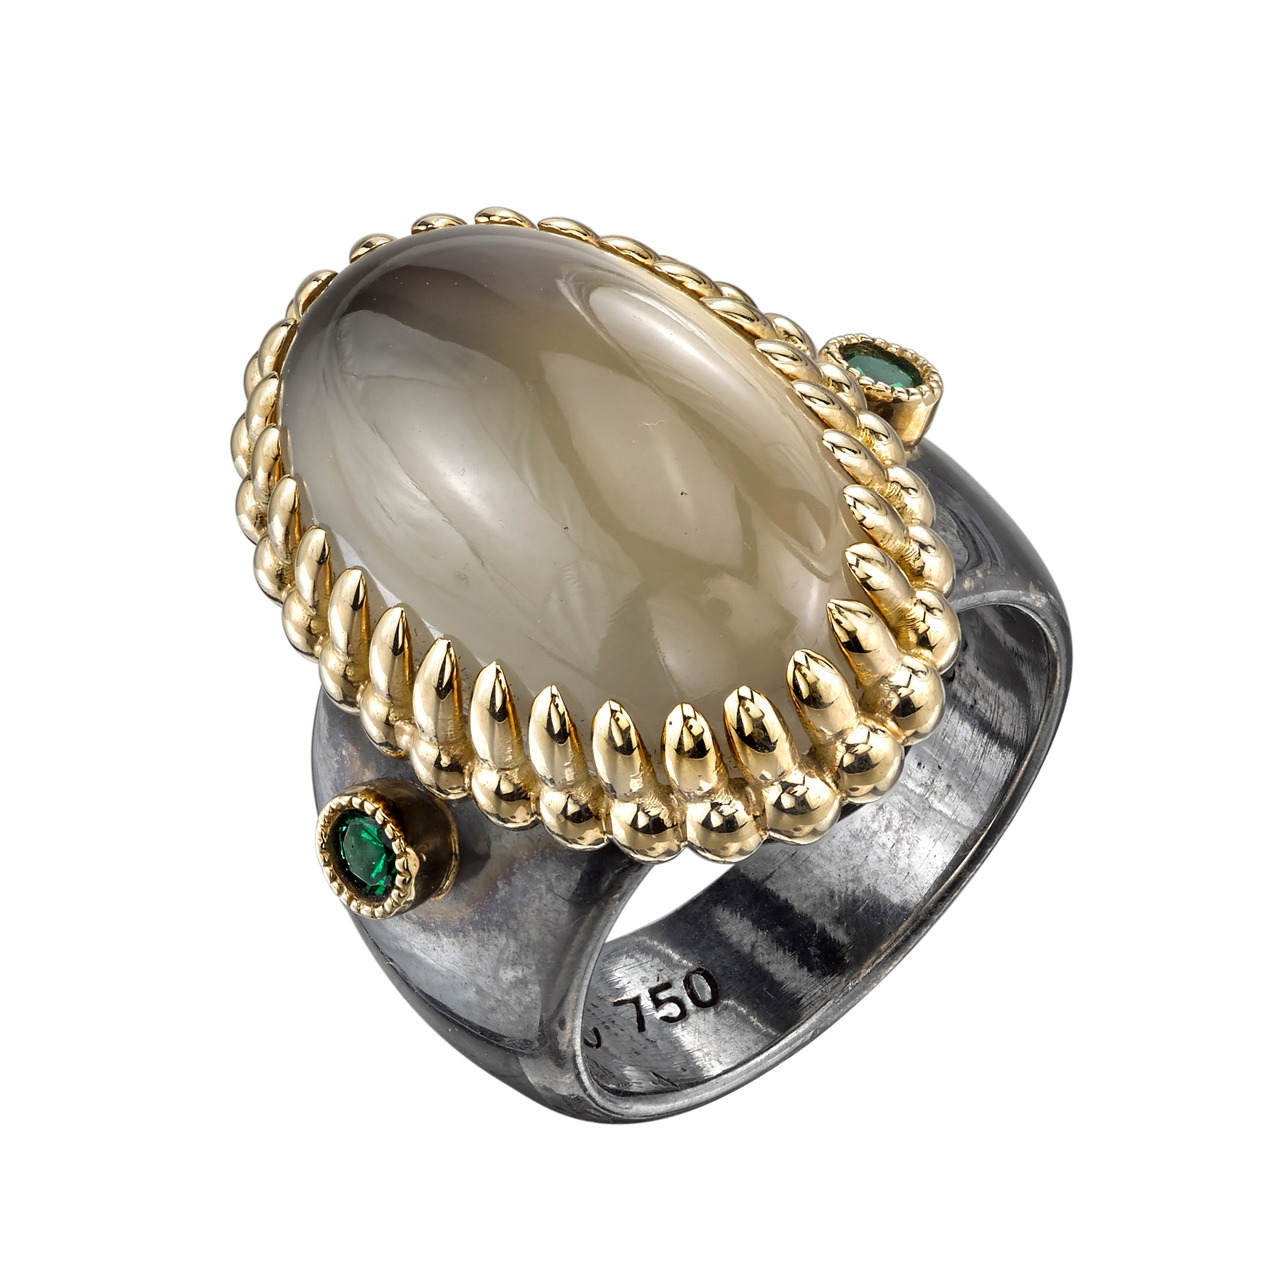 16.57 Ct Moonstone set in 18 Karat Yellow Gold with an Organic Silver band. Each side of the band is accented with vivid green Tsavorite (0.25 Ct Total).